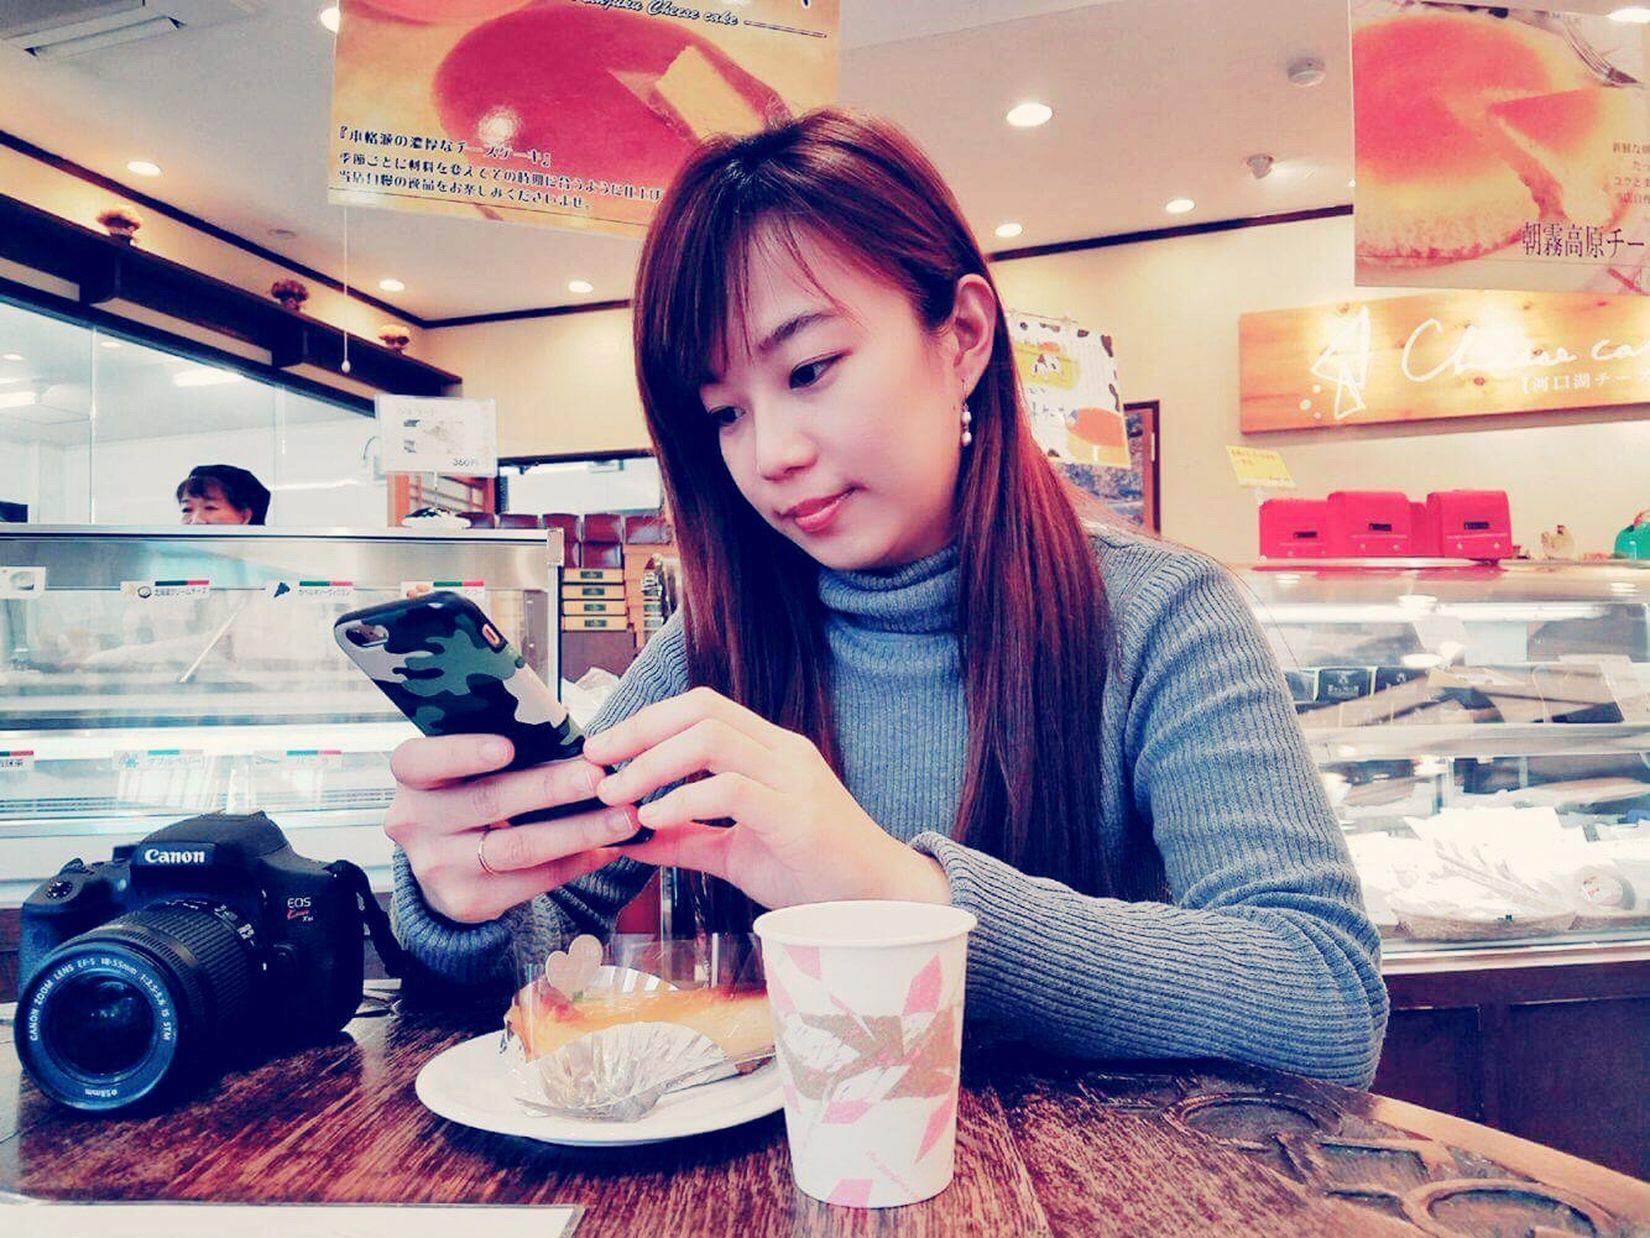 Mobile Conversations Cheesecakecafe Cakeandcoffee Perfectplacetorelax Japan